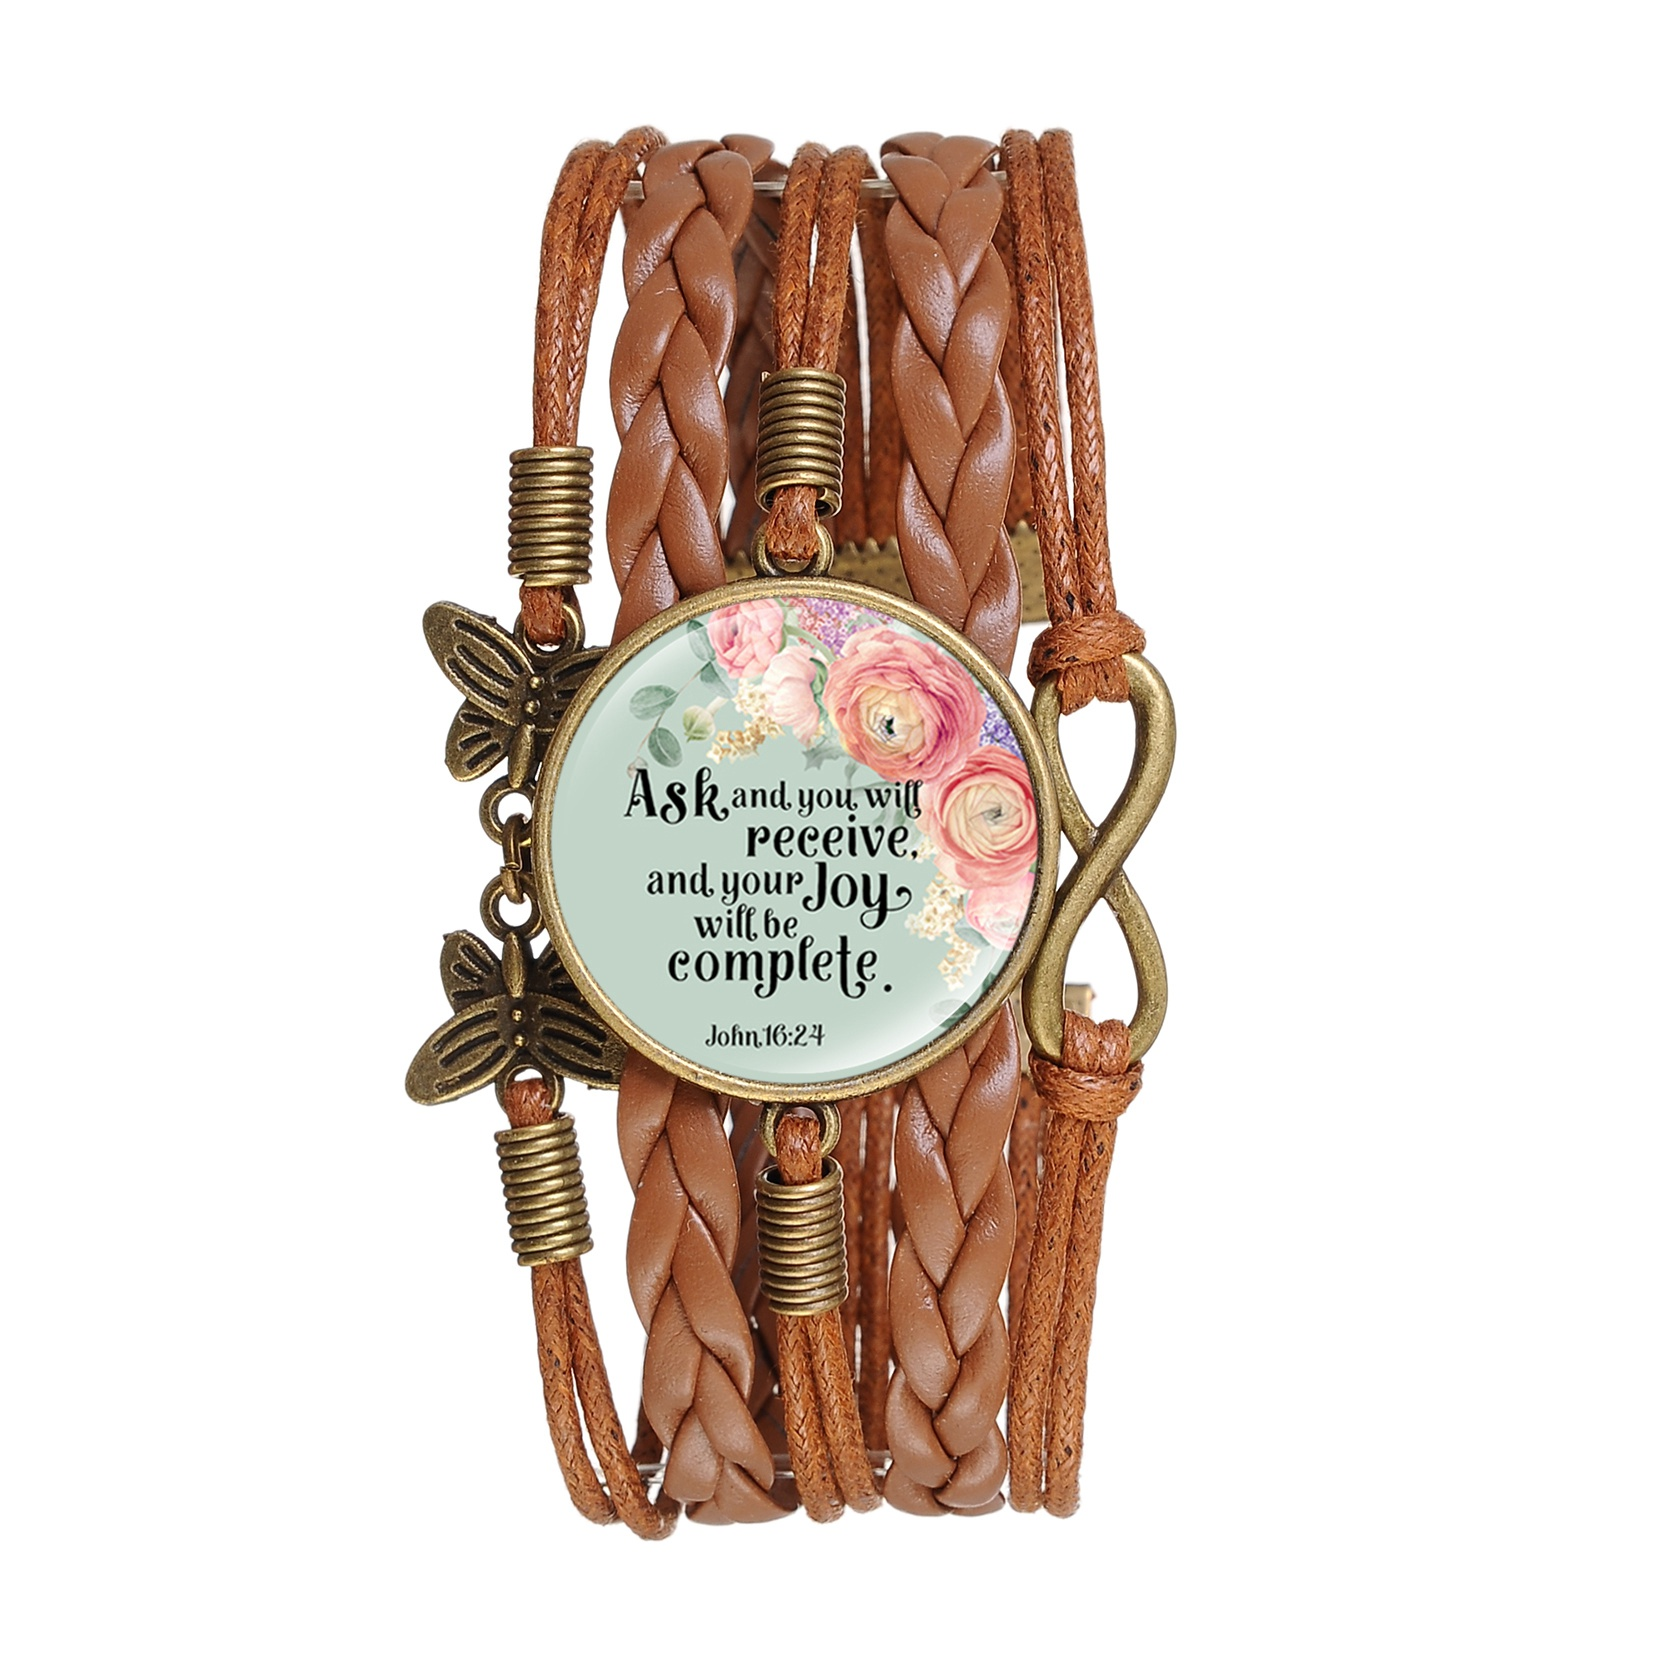 New Creative Multilayer Glass Cabochon Bible Verse Handmade Leathers Bracelet Jewelry For Men For Women Gifts Female Fashion in Charm Bracelets from Jewelry Accessories